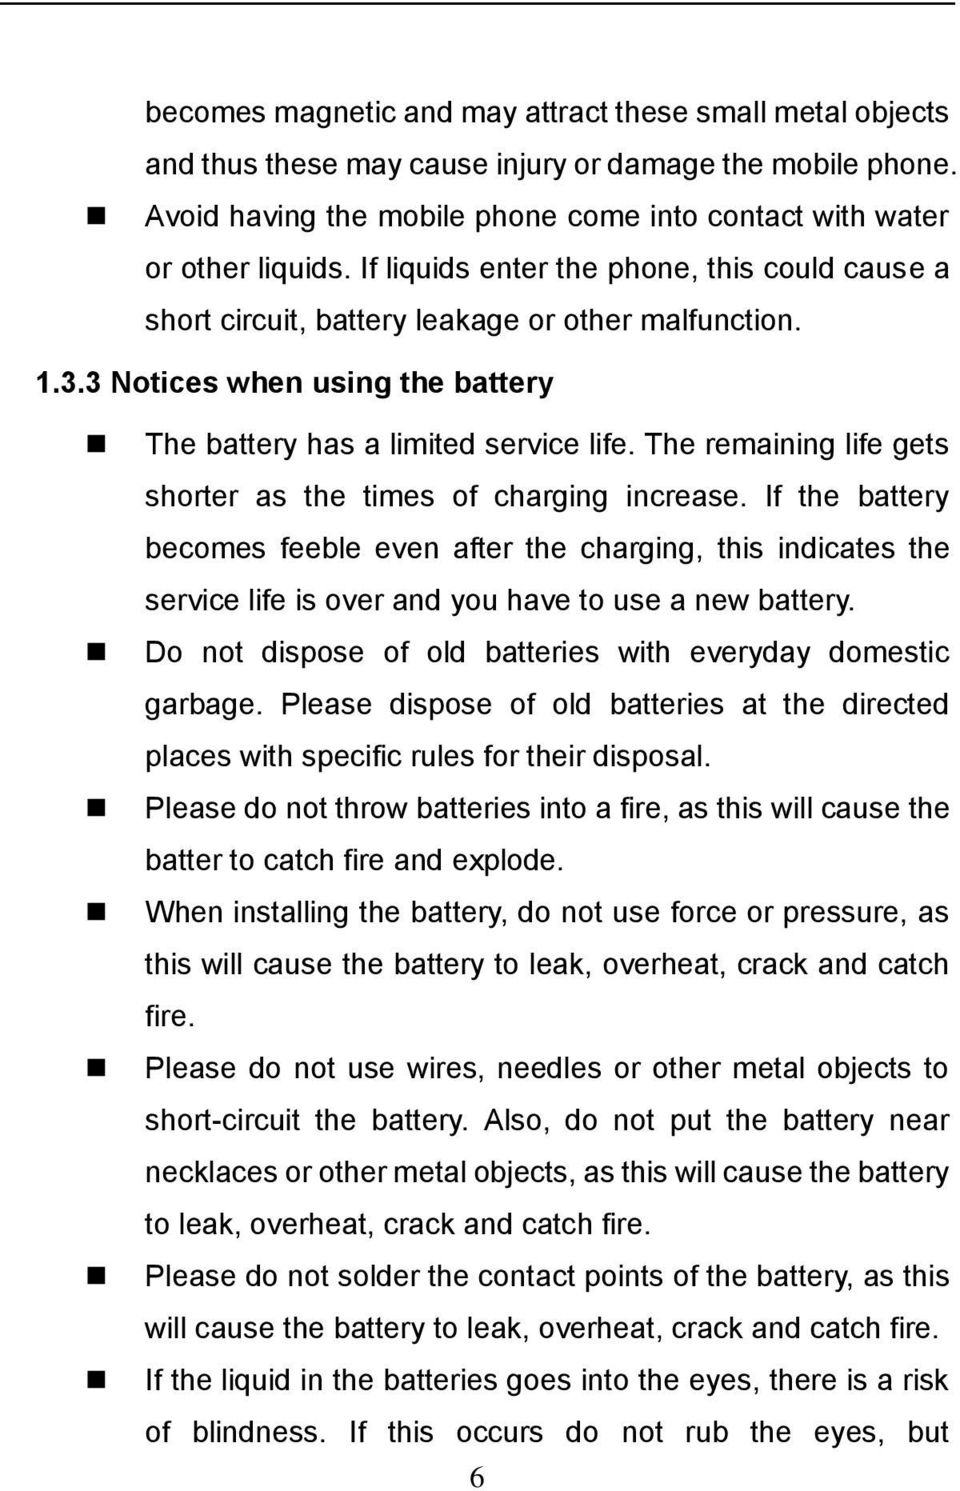 The remaining life gets shorter as the times of charging increase. If the battery becomes feeble even after the charging, this indicates the service life is over and you have to use a new battery.